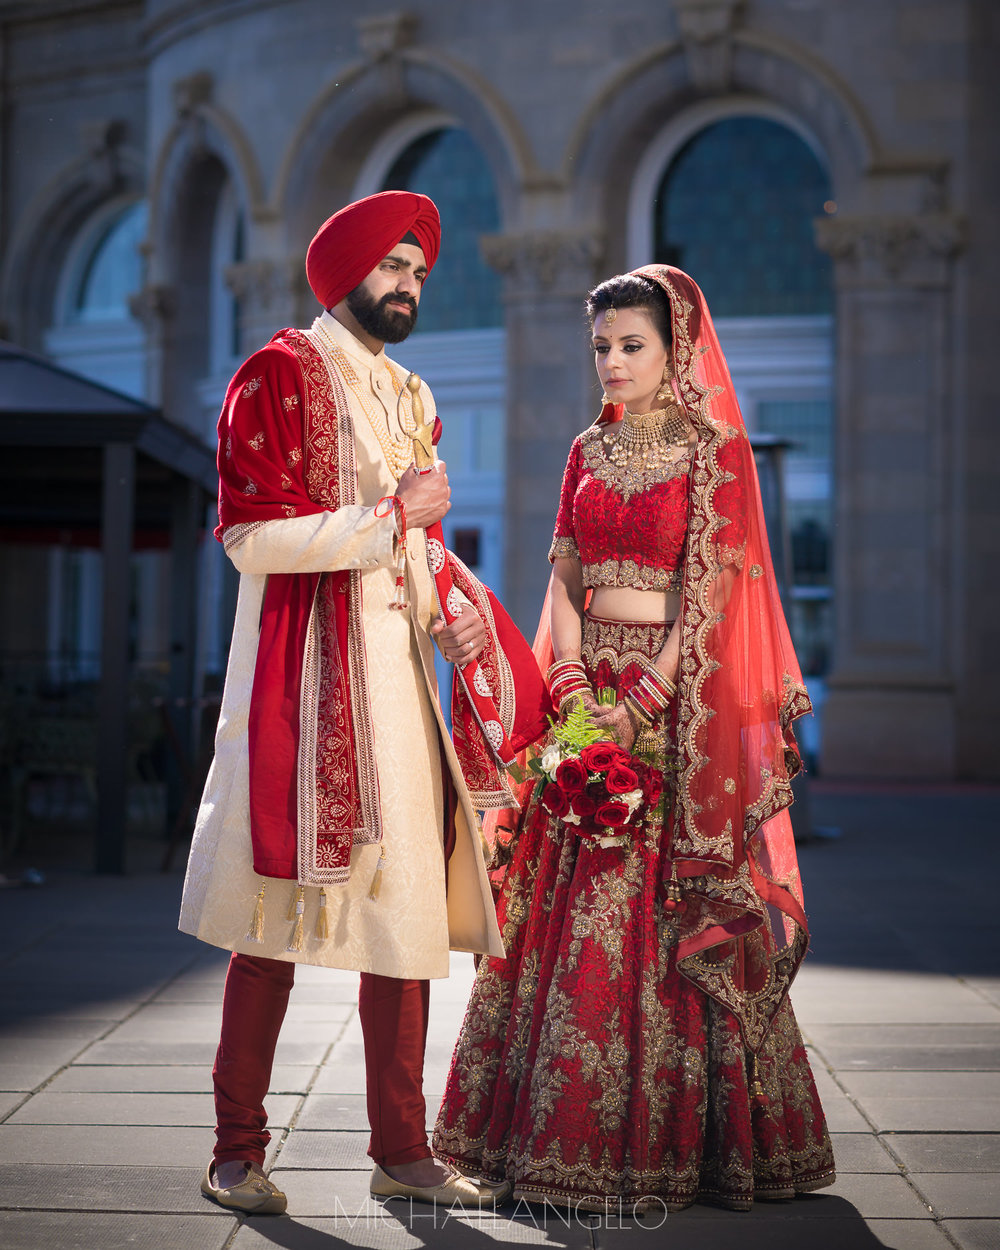 Edmonton-Wedding-Photographer-Sikh-Weddings-East-Indian-Weddings